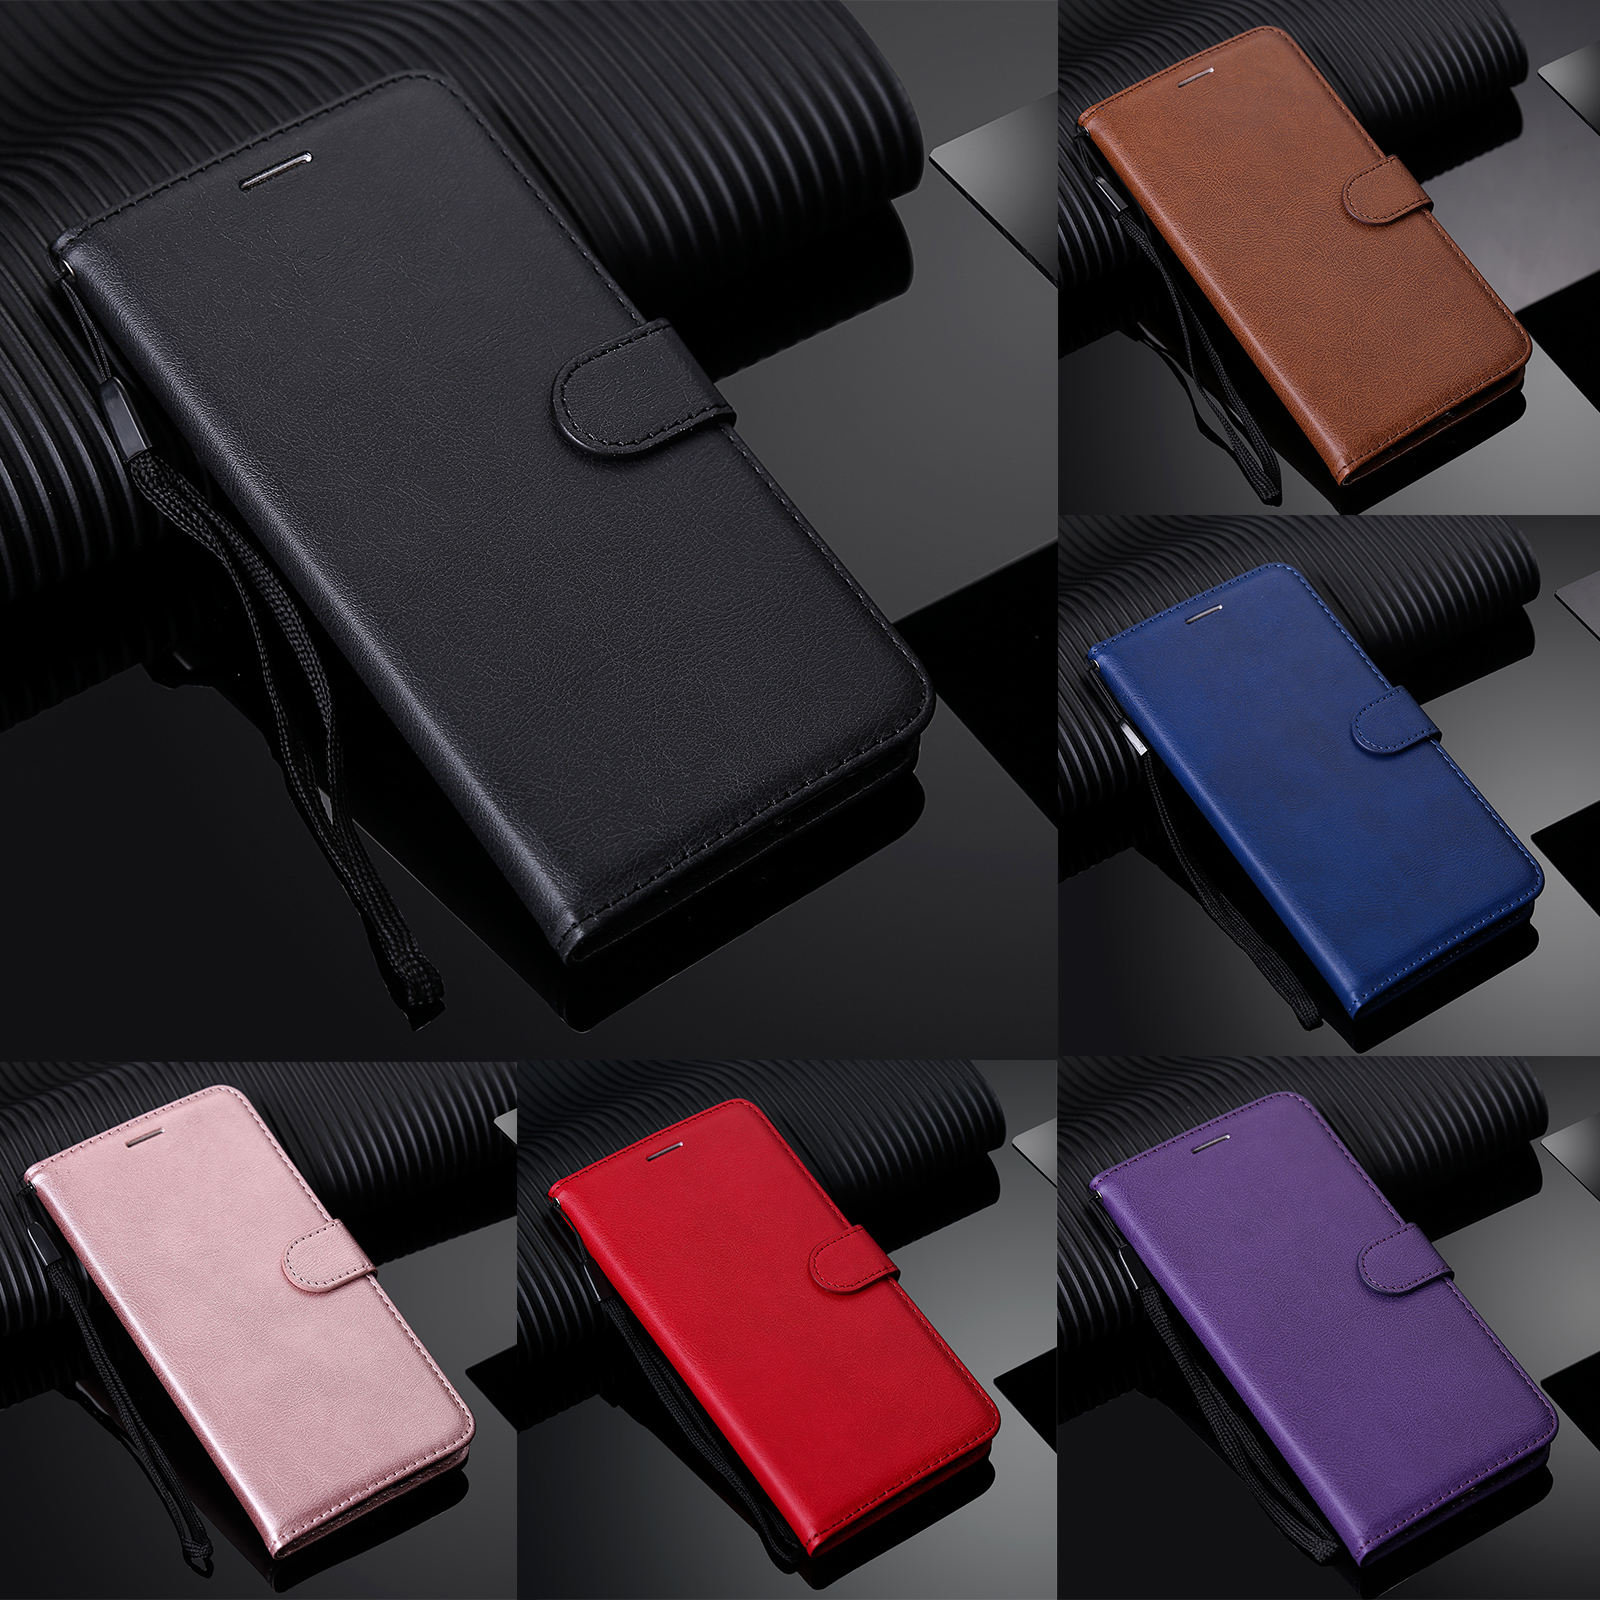 Leather Coque Flip Wallet Case for Huawei P40 P30 P20 Mate 20 10 P Smart Z Y5 Y6 Y7 Y9 Lite Pro Prime 2019 2018 With Strap Case(China)